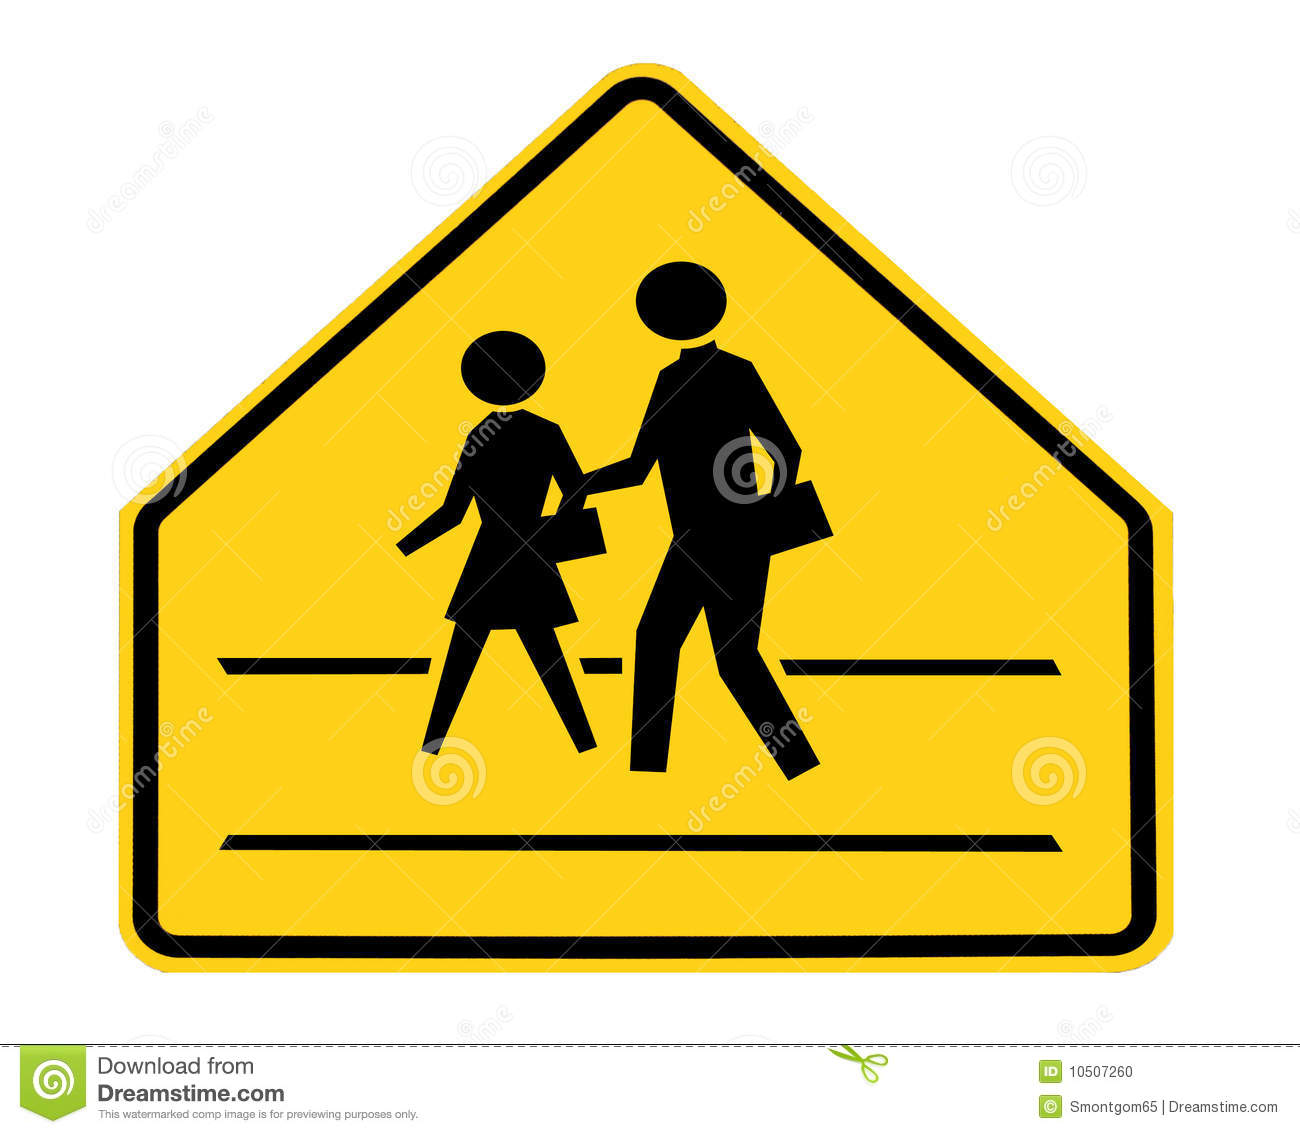 - road-sign-school-crossing-lines-10507260